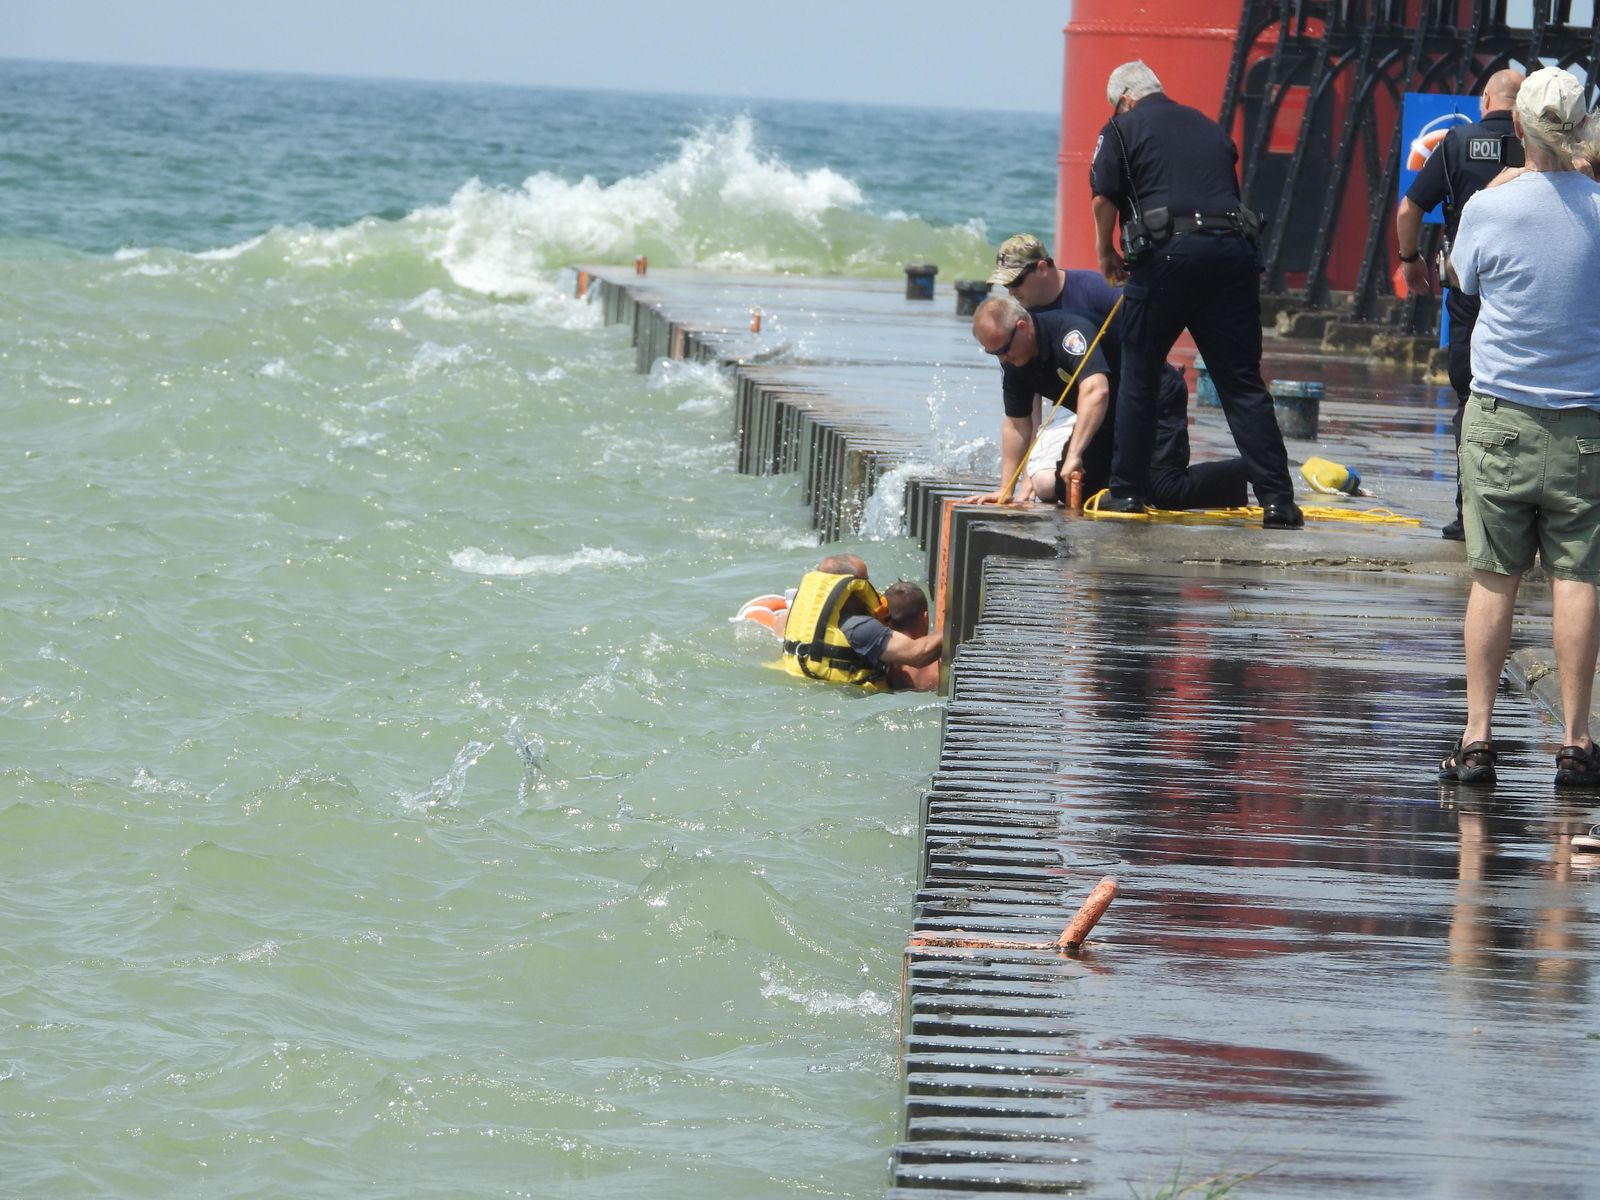 An 18-year-old boy was rescued by officials with the South Haven Area Emergency Services on Friday, after being caught in a rip tide along the South Pier. (WWMT/Courtesy of South Haven Area Emergency Services)